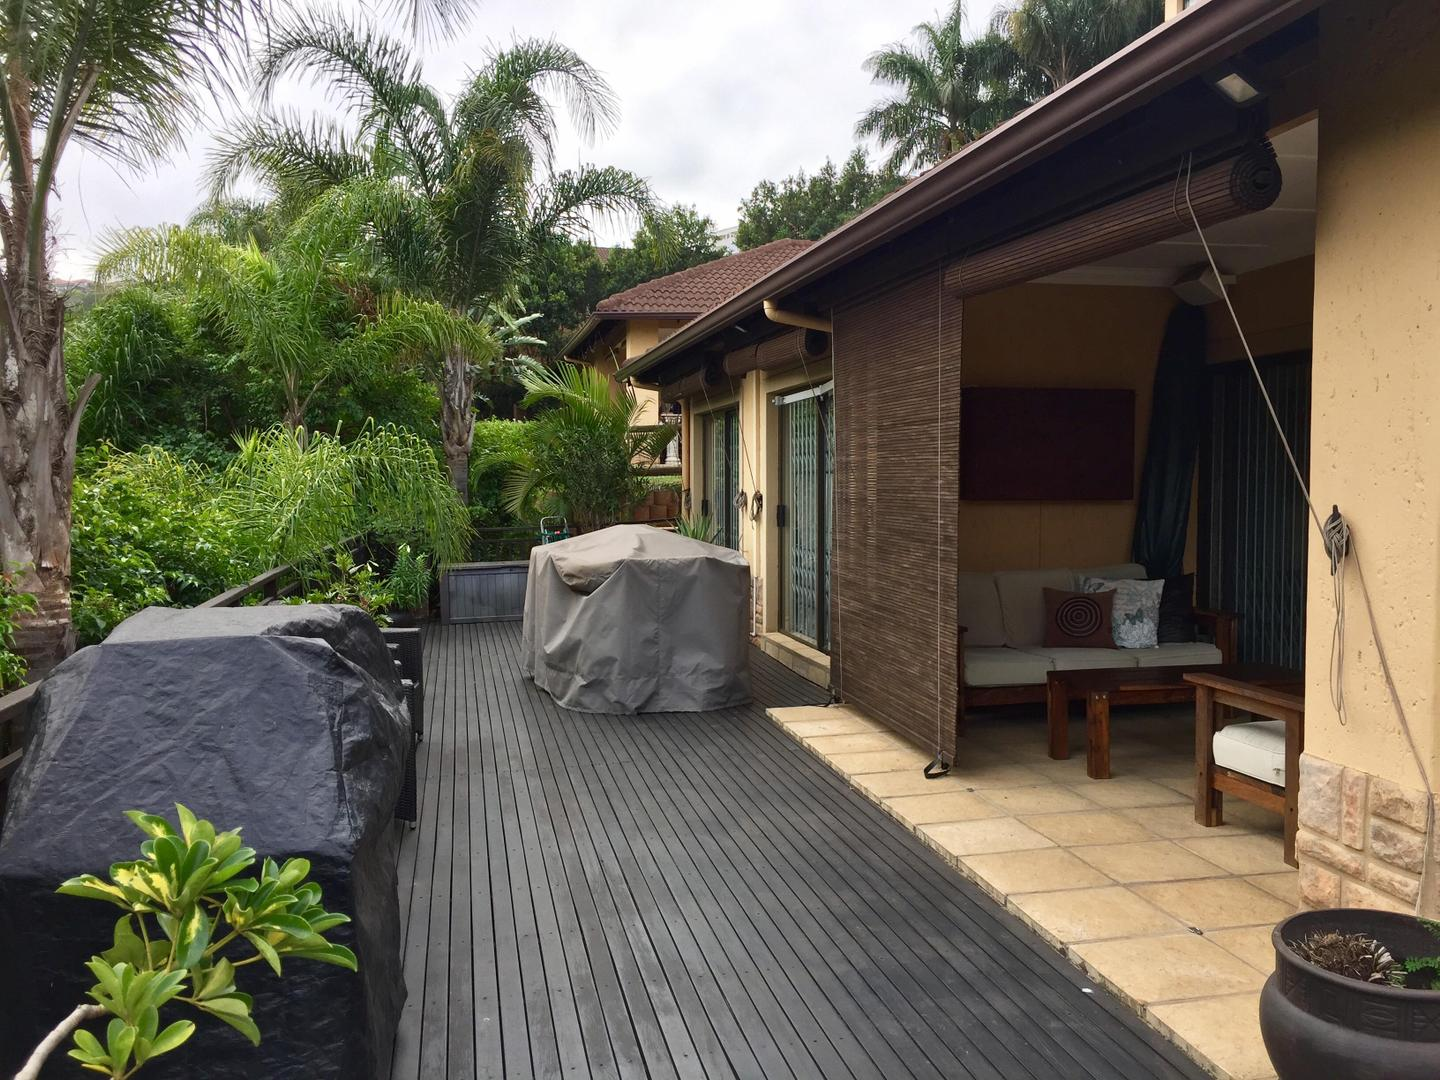 3 Bedroom House for sale in La Lucia 1801093 : photo#13